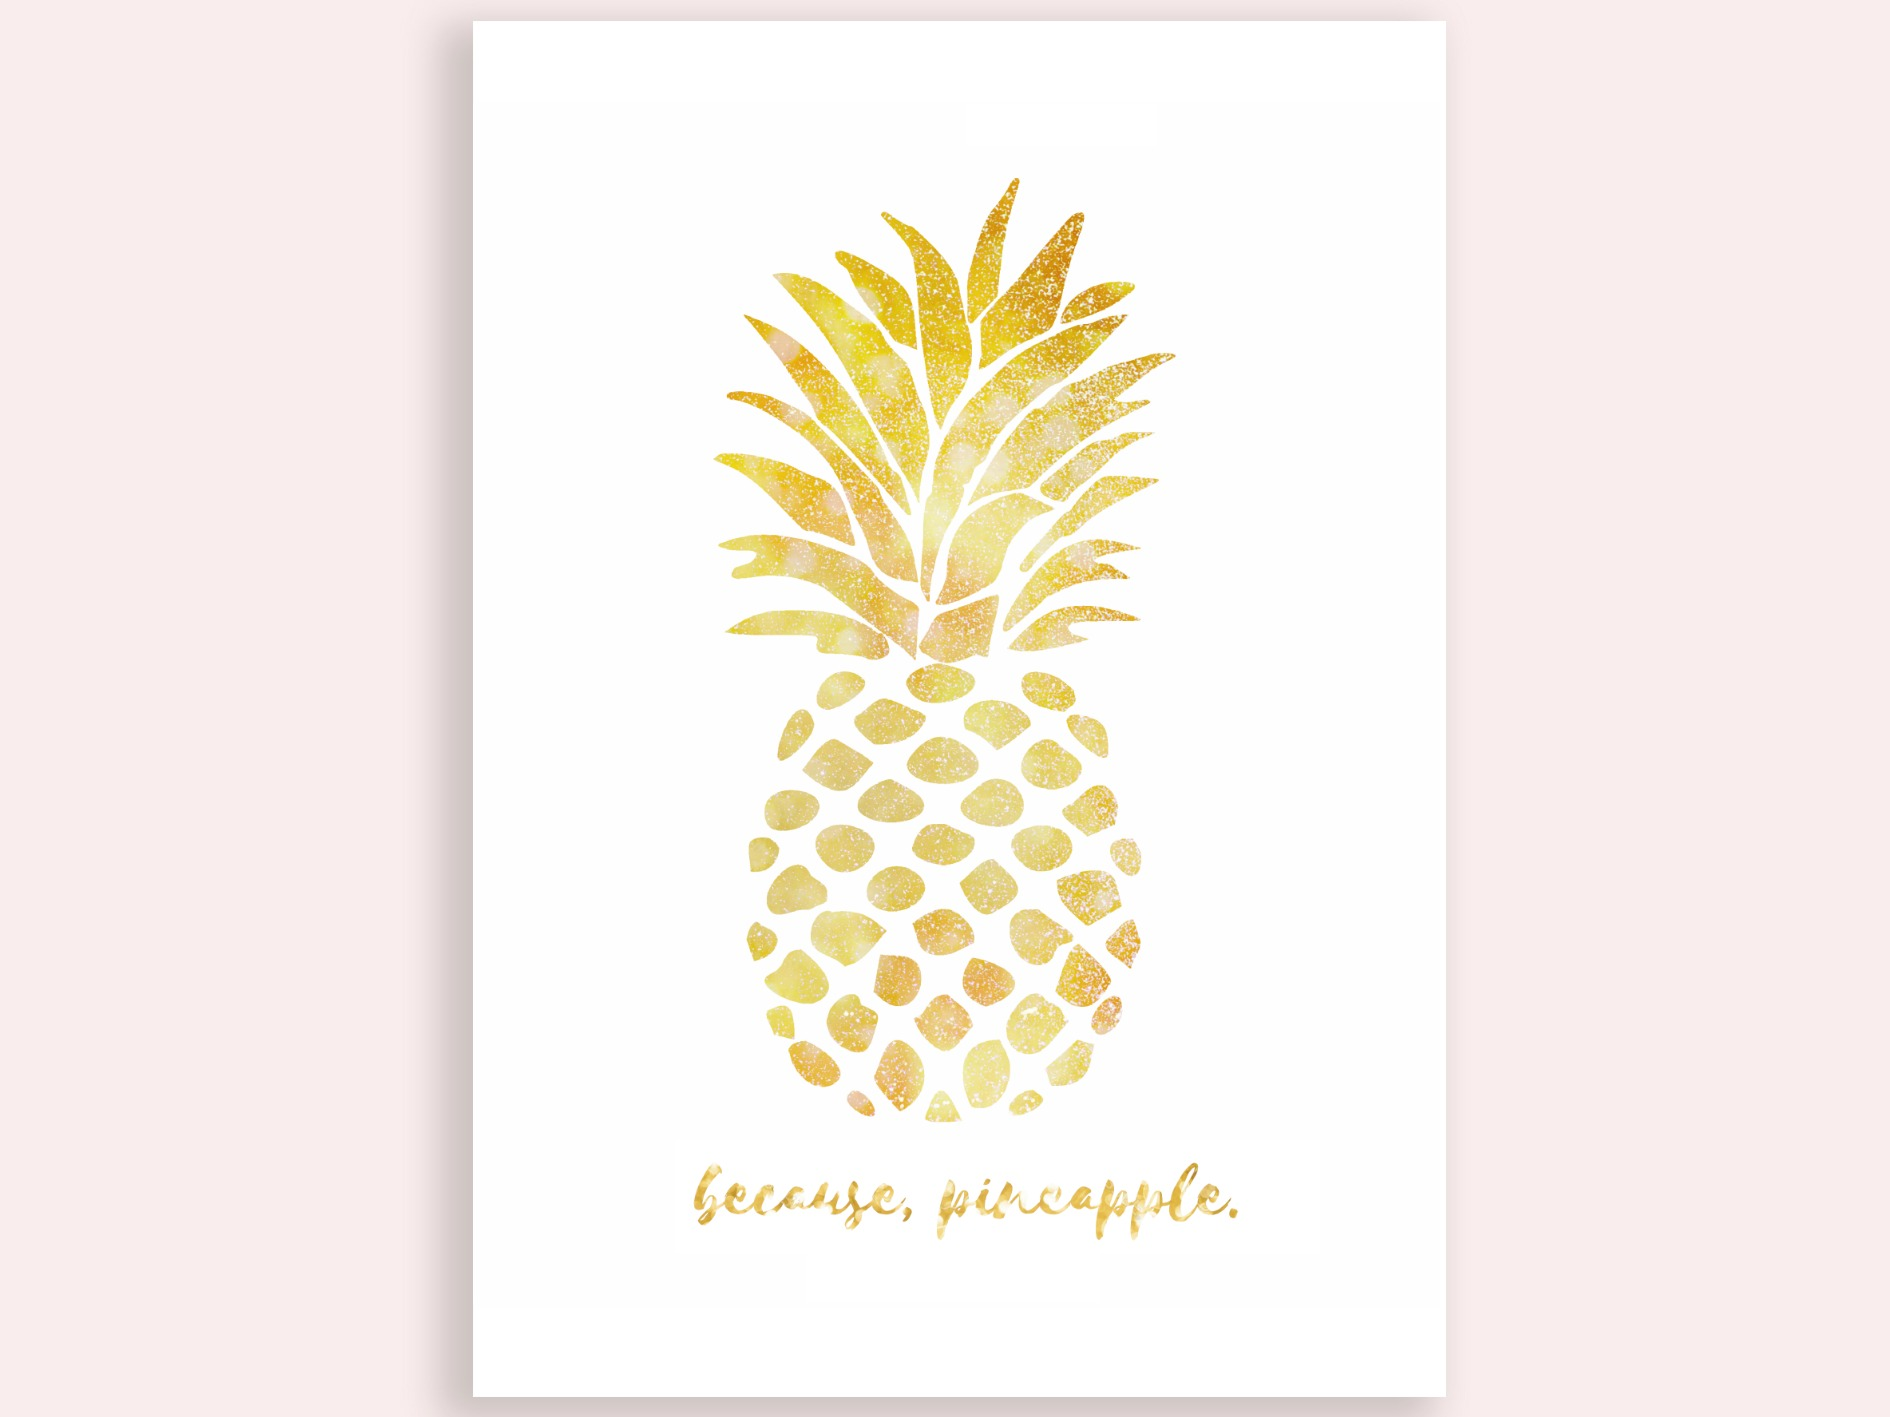 picture about Free Printable Pineapple titled Gold Pineapple Artwork Totally free Printables! - Designing Beautiful